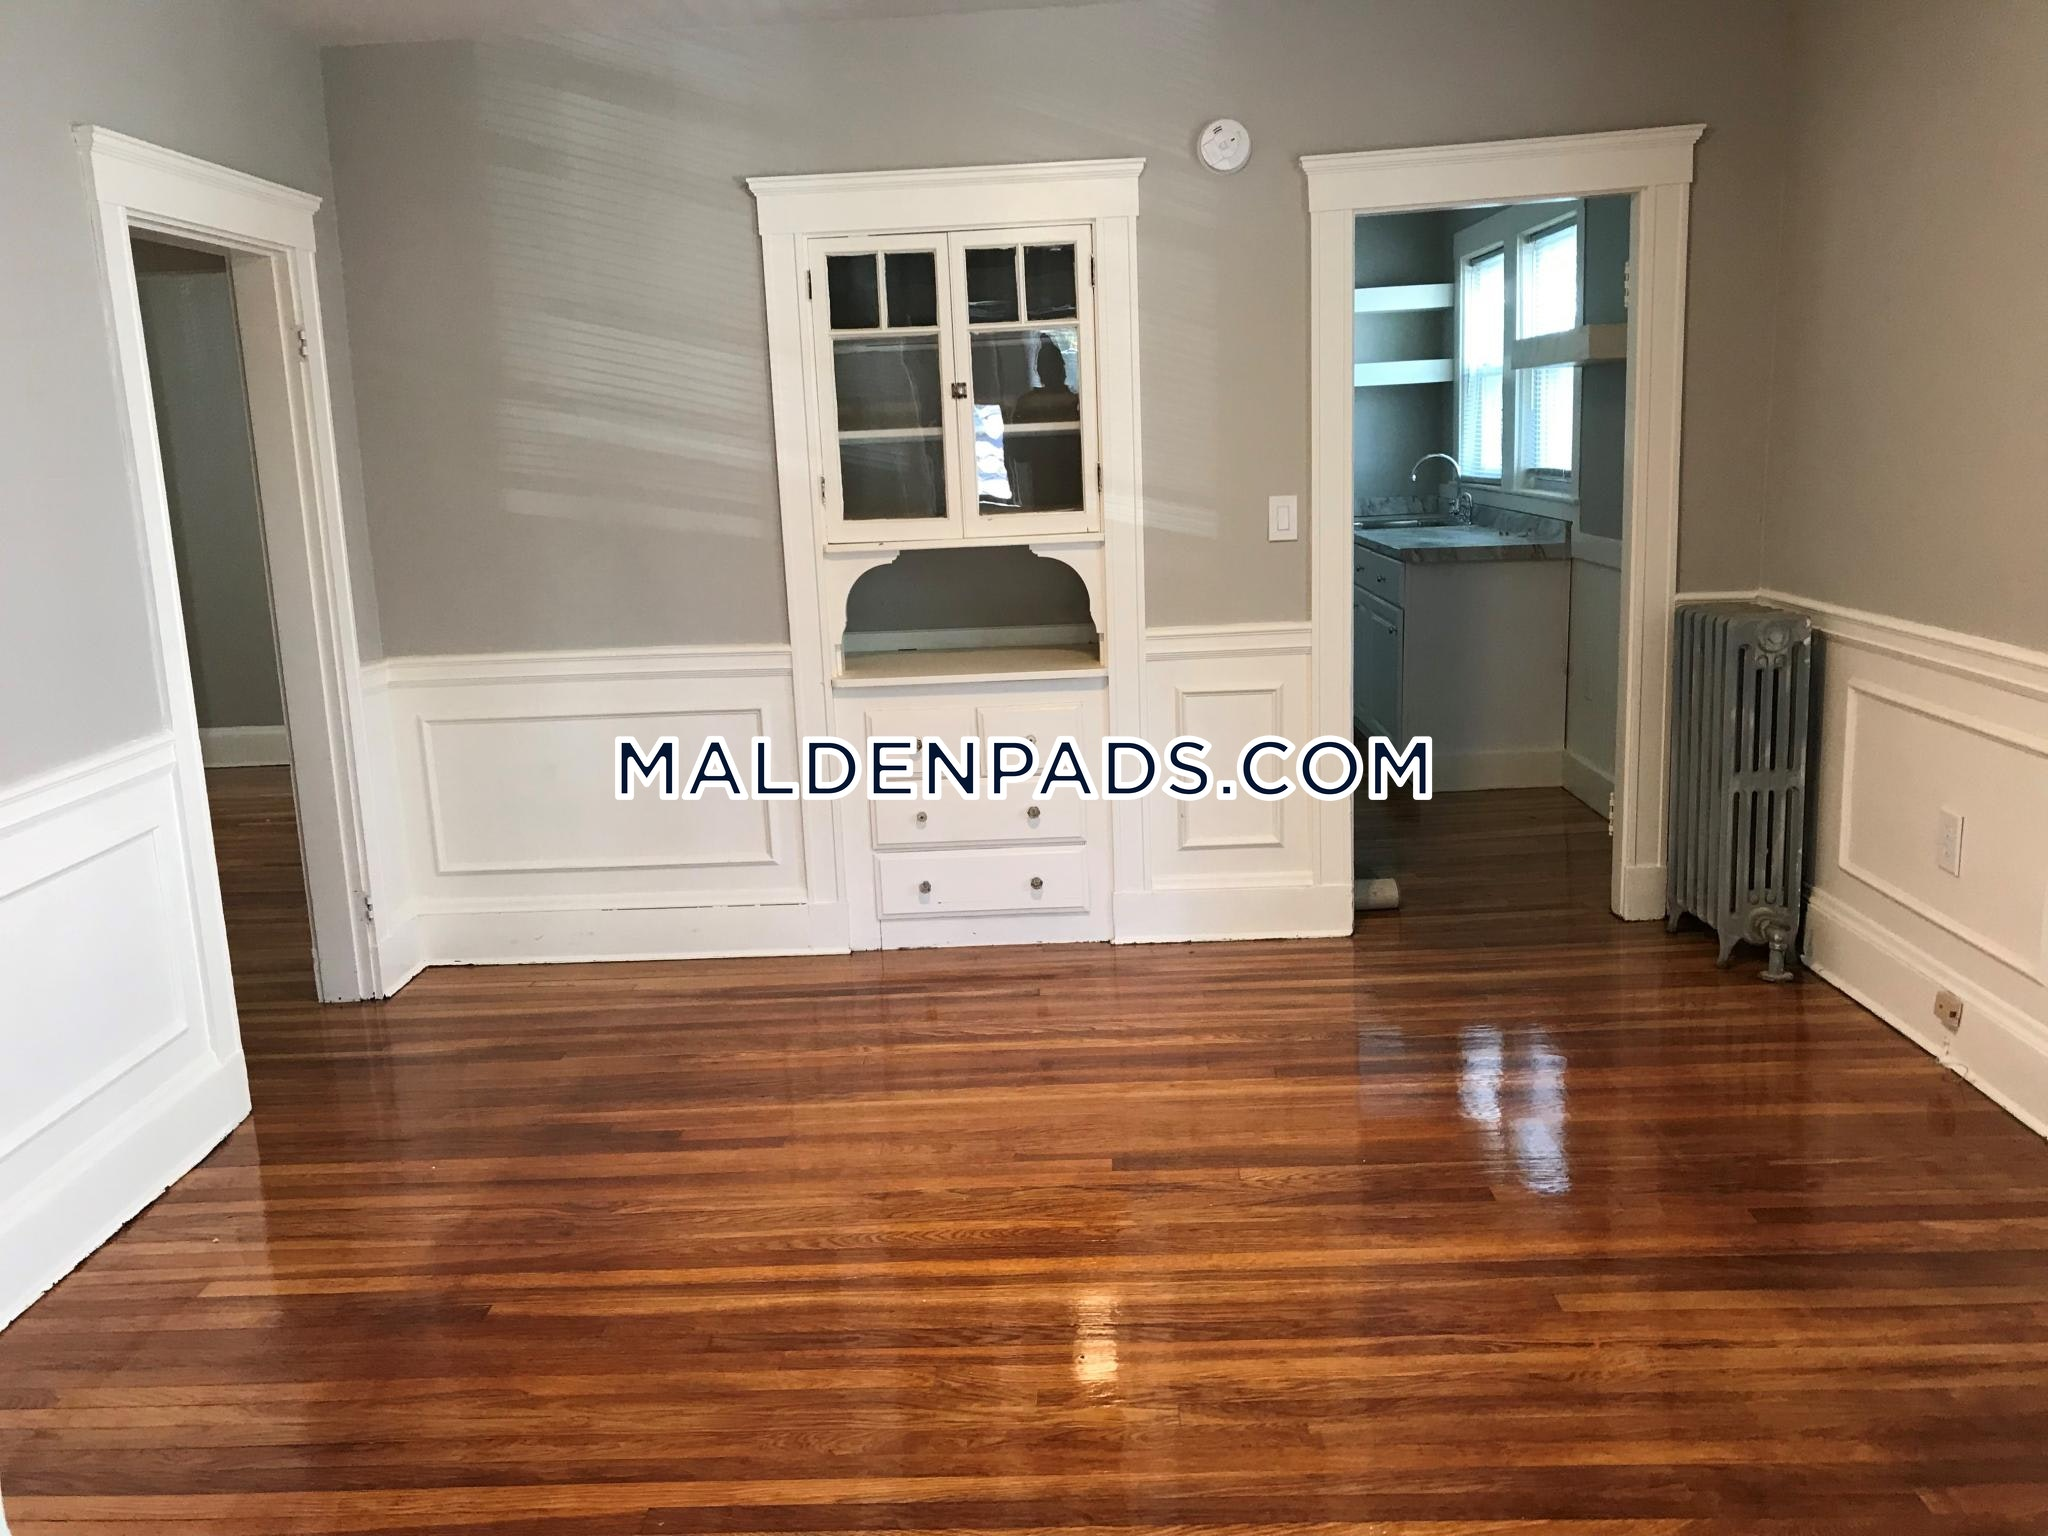 1 Room Apartment For Rent In Boston